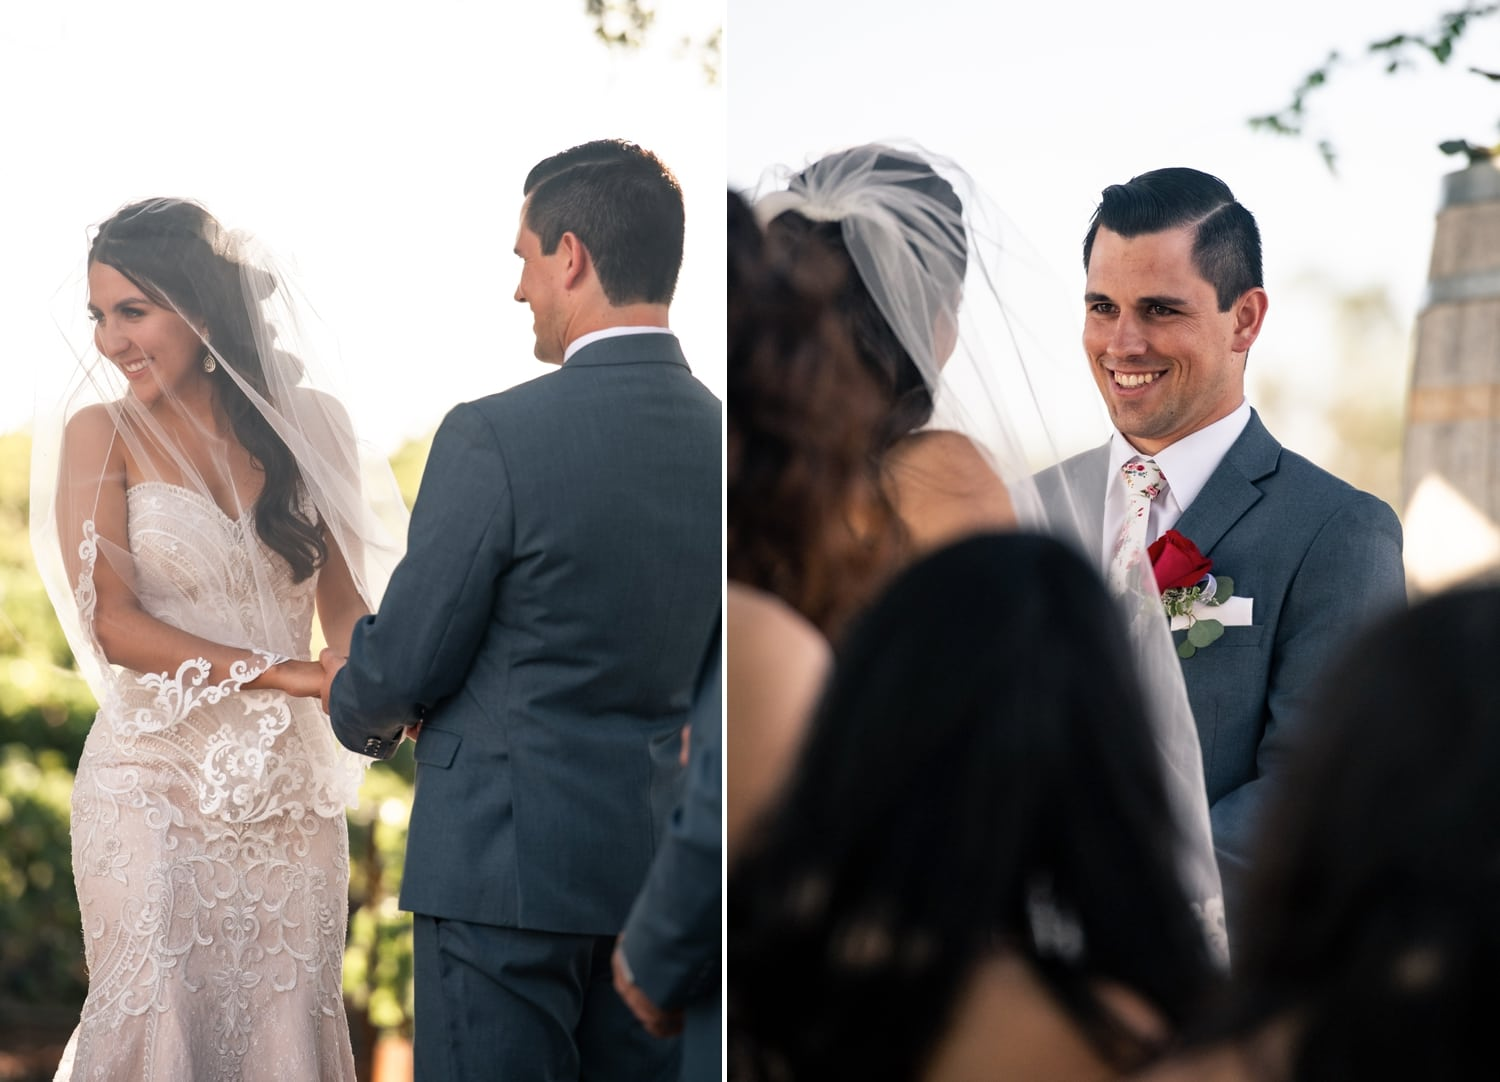 Groom looking at his bride during their wedding ceremony.